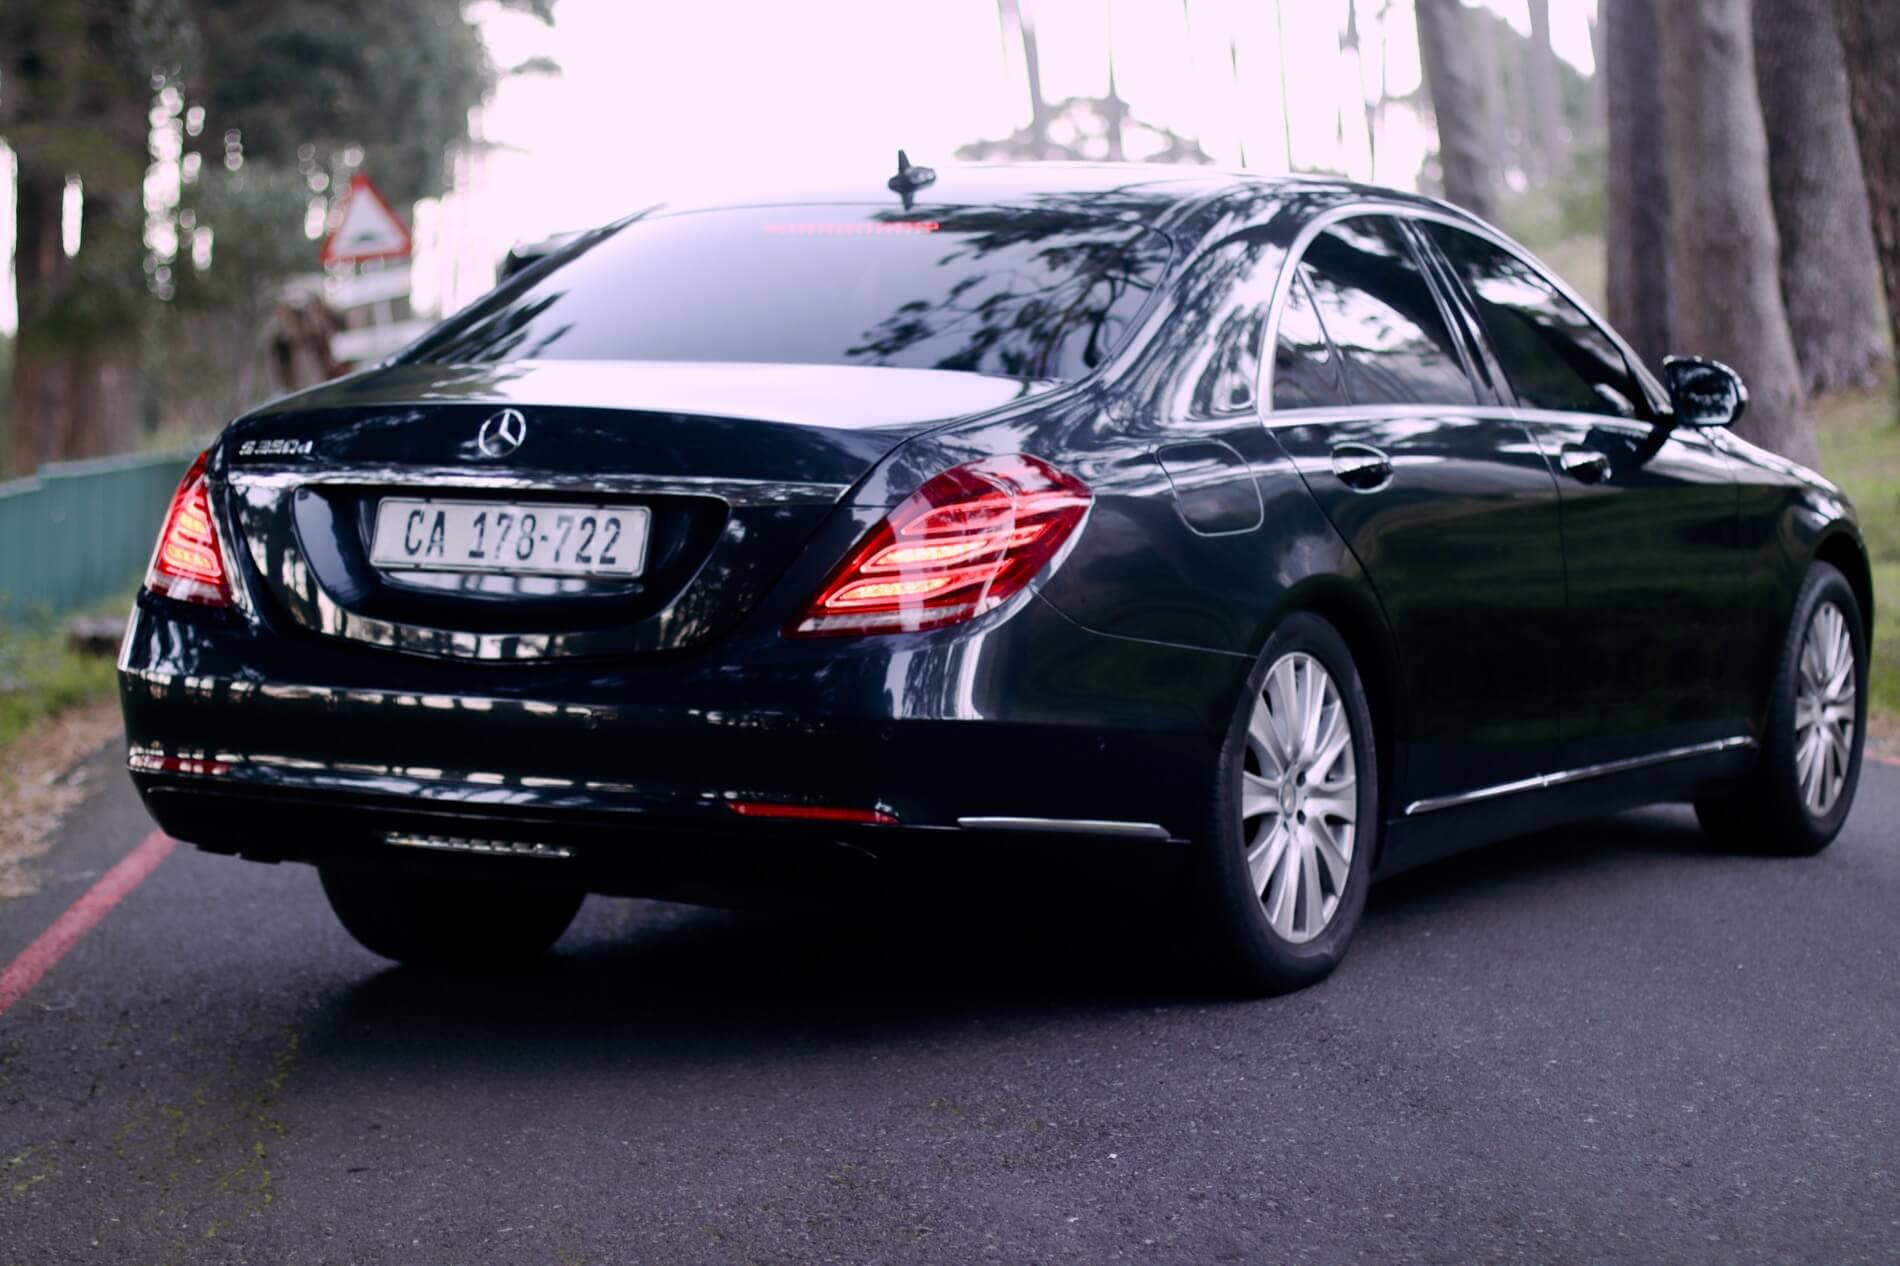 IMG_0553-SOHO-VIP-Luxury-Chauffeurs-in-Cape-Town-South-Africa